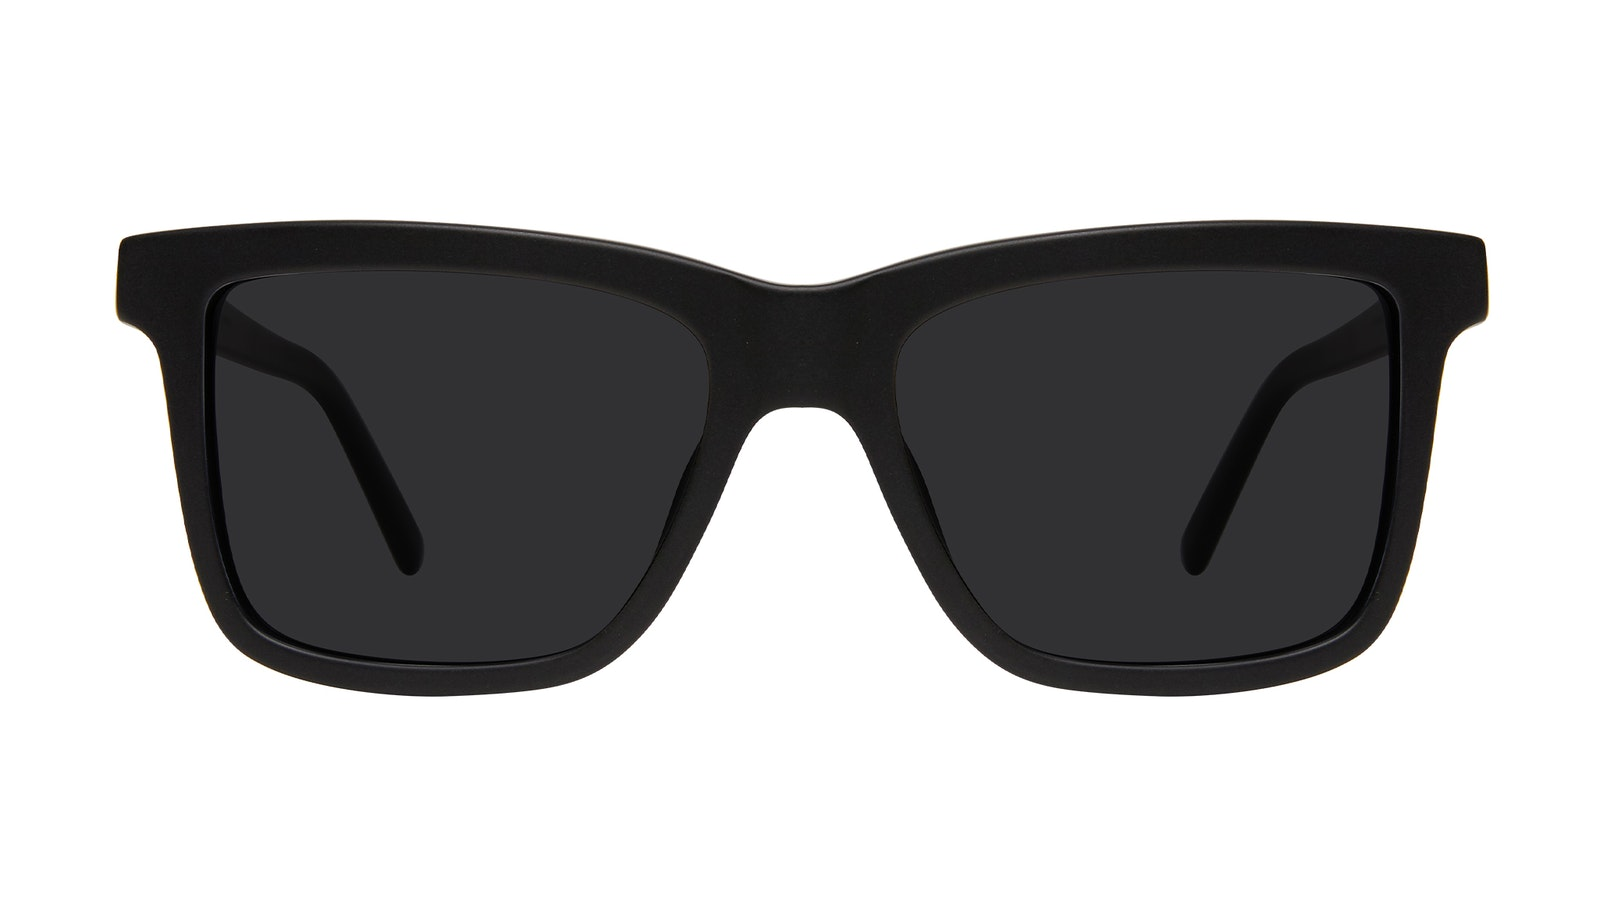 Affordable Fashion Glasses Square Sunglasses Men Elite Matte Black